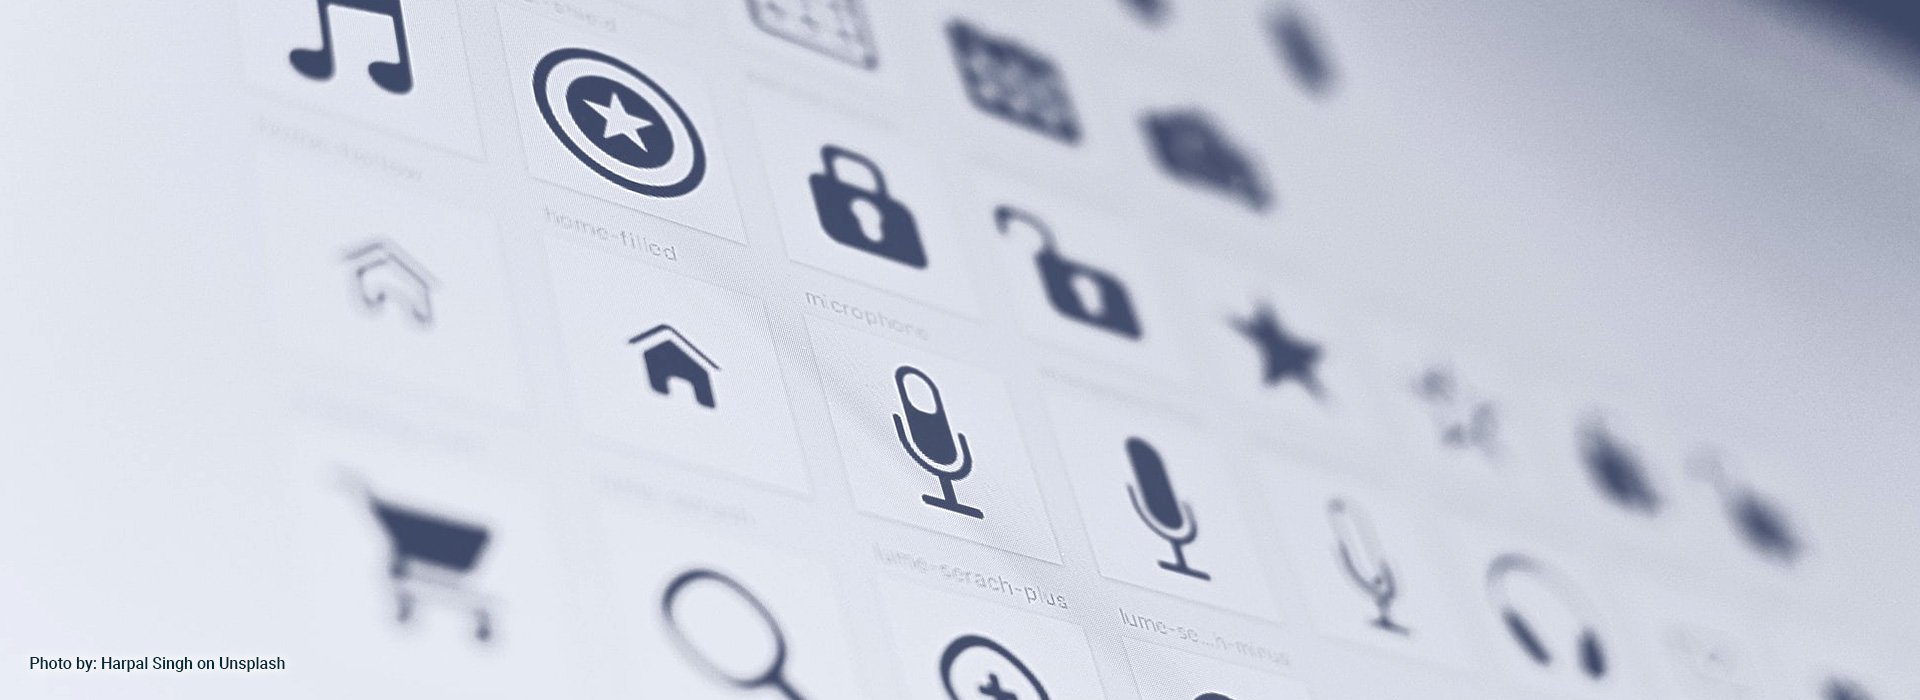 Iconen op maat custom business icons